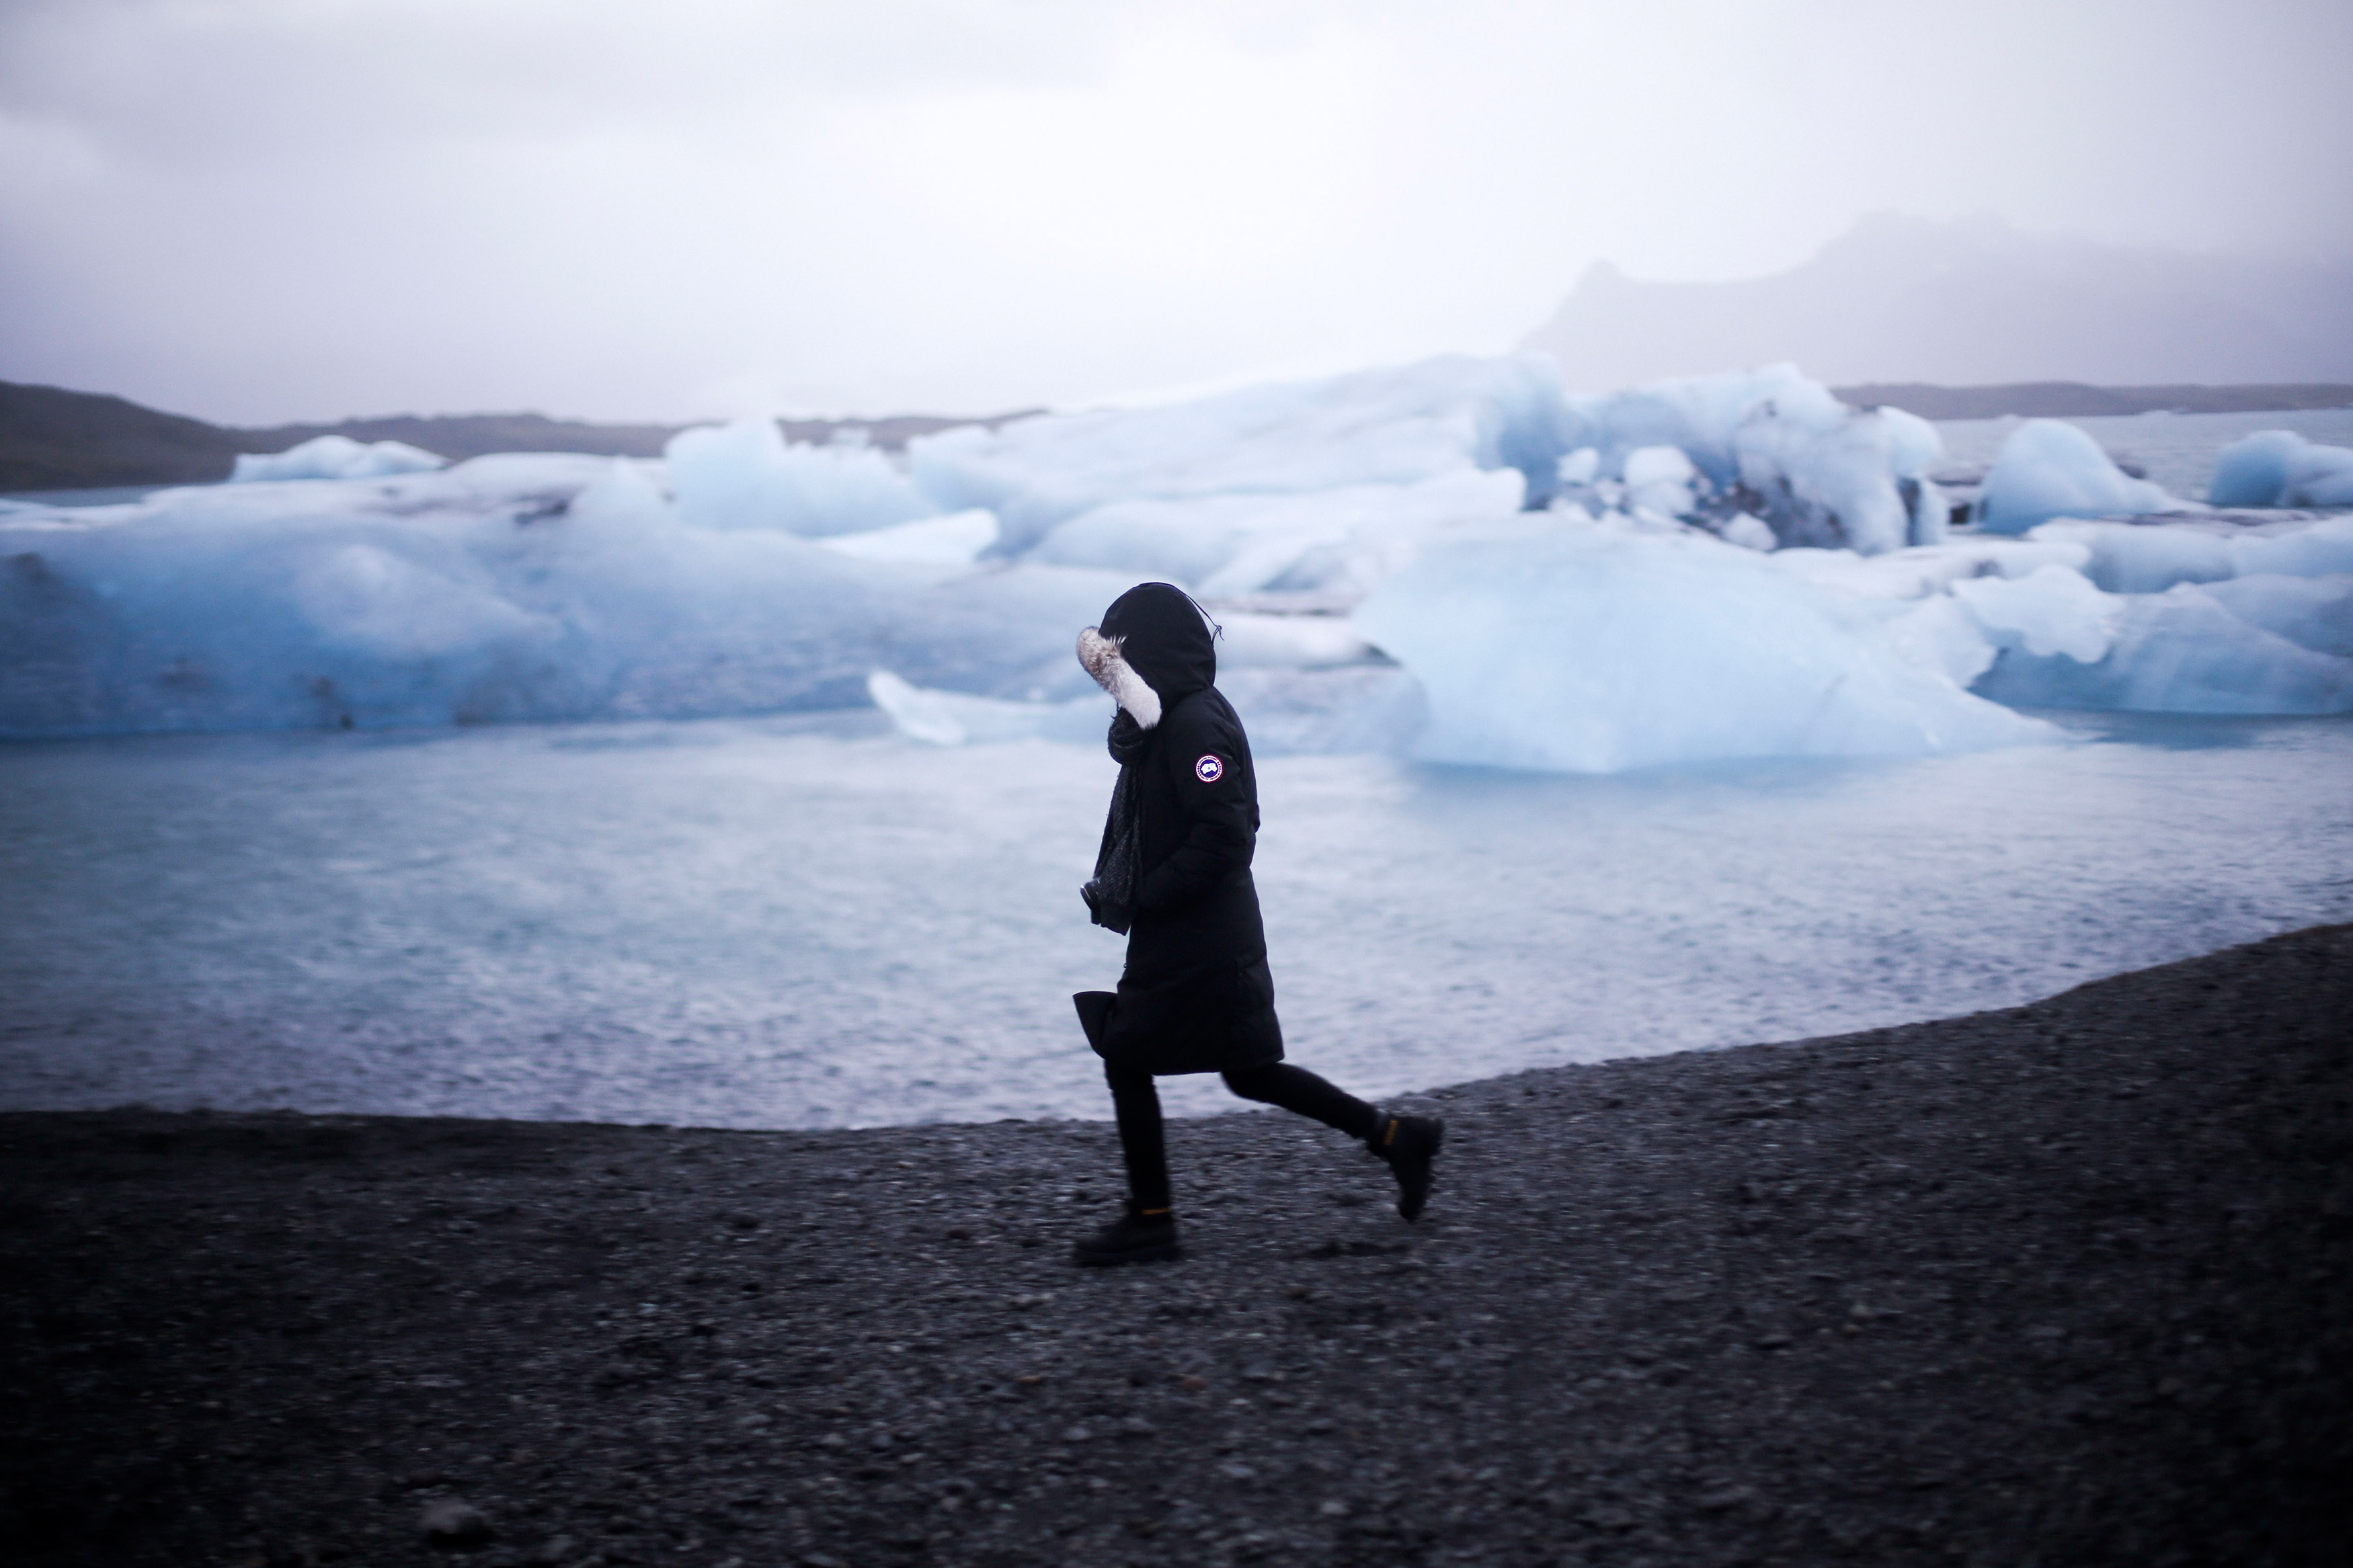 IHEARTALICE.DE - Fashion, Lifestyle & Travel-Blog from Berlin/Germany by Alice M. Huynh: Travel Diary with Black Canada Goose Kensington Parka & CAT Footwear at Jökusarlon/Iceland / Iceland Glacier / Travel-Diary